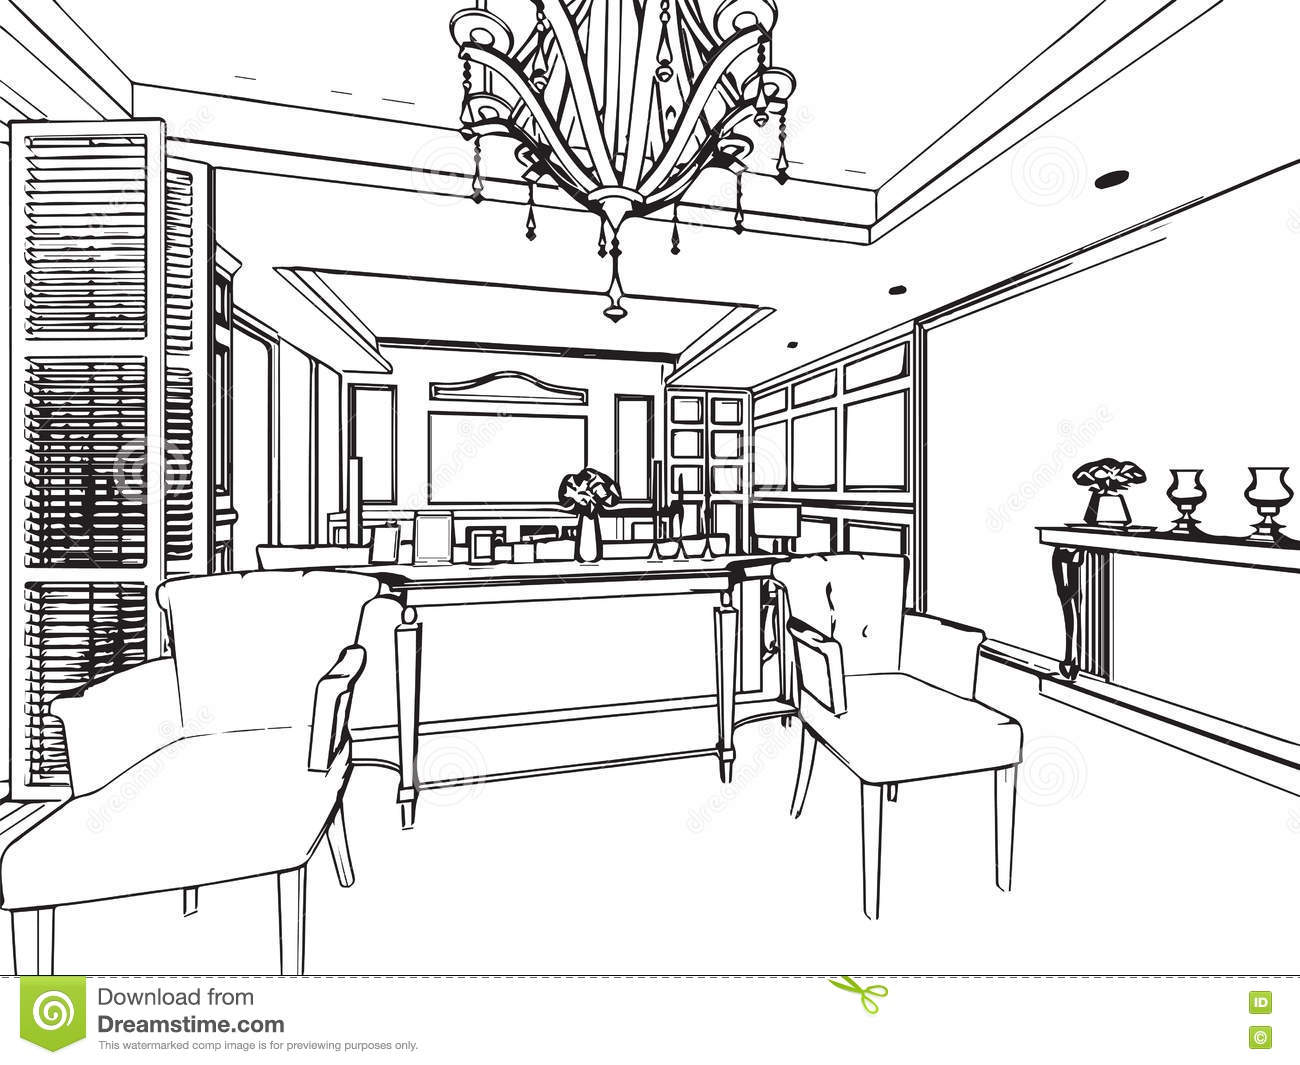 Simple Lay Out Plan For Mini Restaurant likewise Royalty Free Stock Photo Abstract Architectural Construction Image21404545 in addition 209628557625935095 furthermore 57626fd2e58ecead460000b9 R Art Of Coffee Iks Design Floor Plan in addition 104075441365446013. on project 9 house blueprint